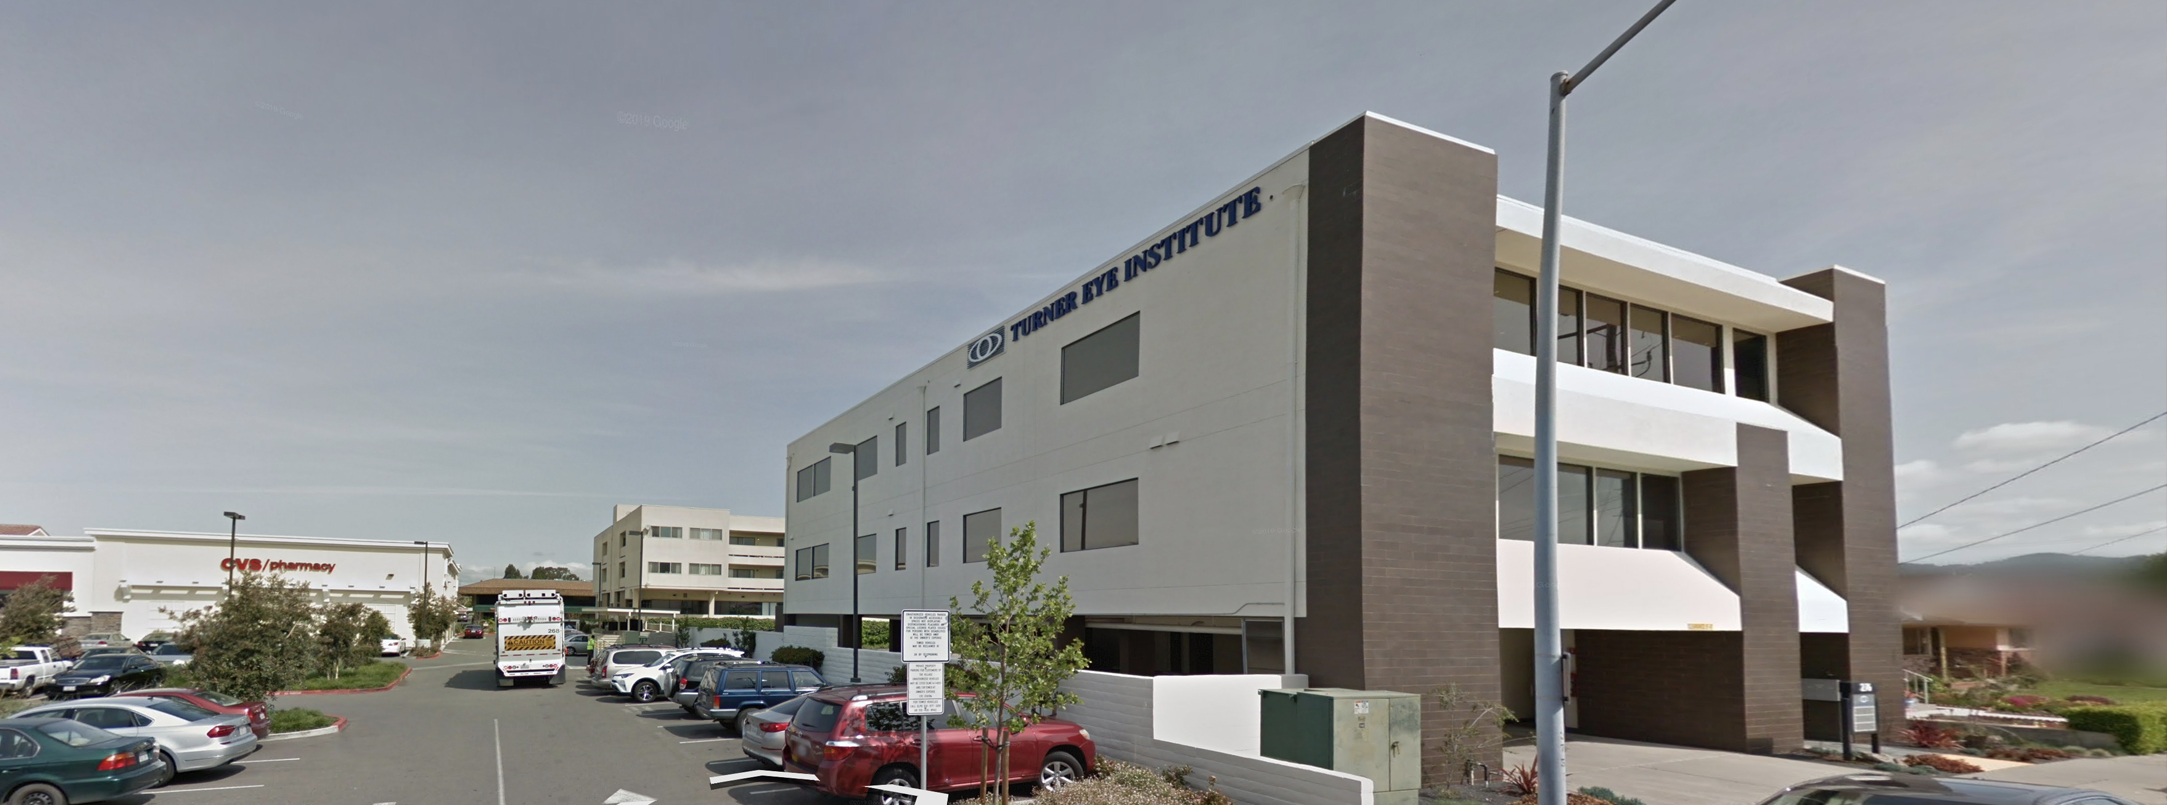 Turner Eye Institute, Downtown San Leandro